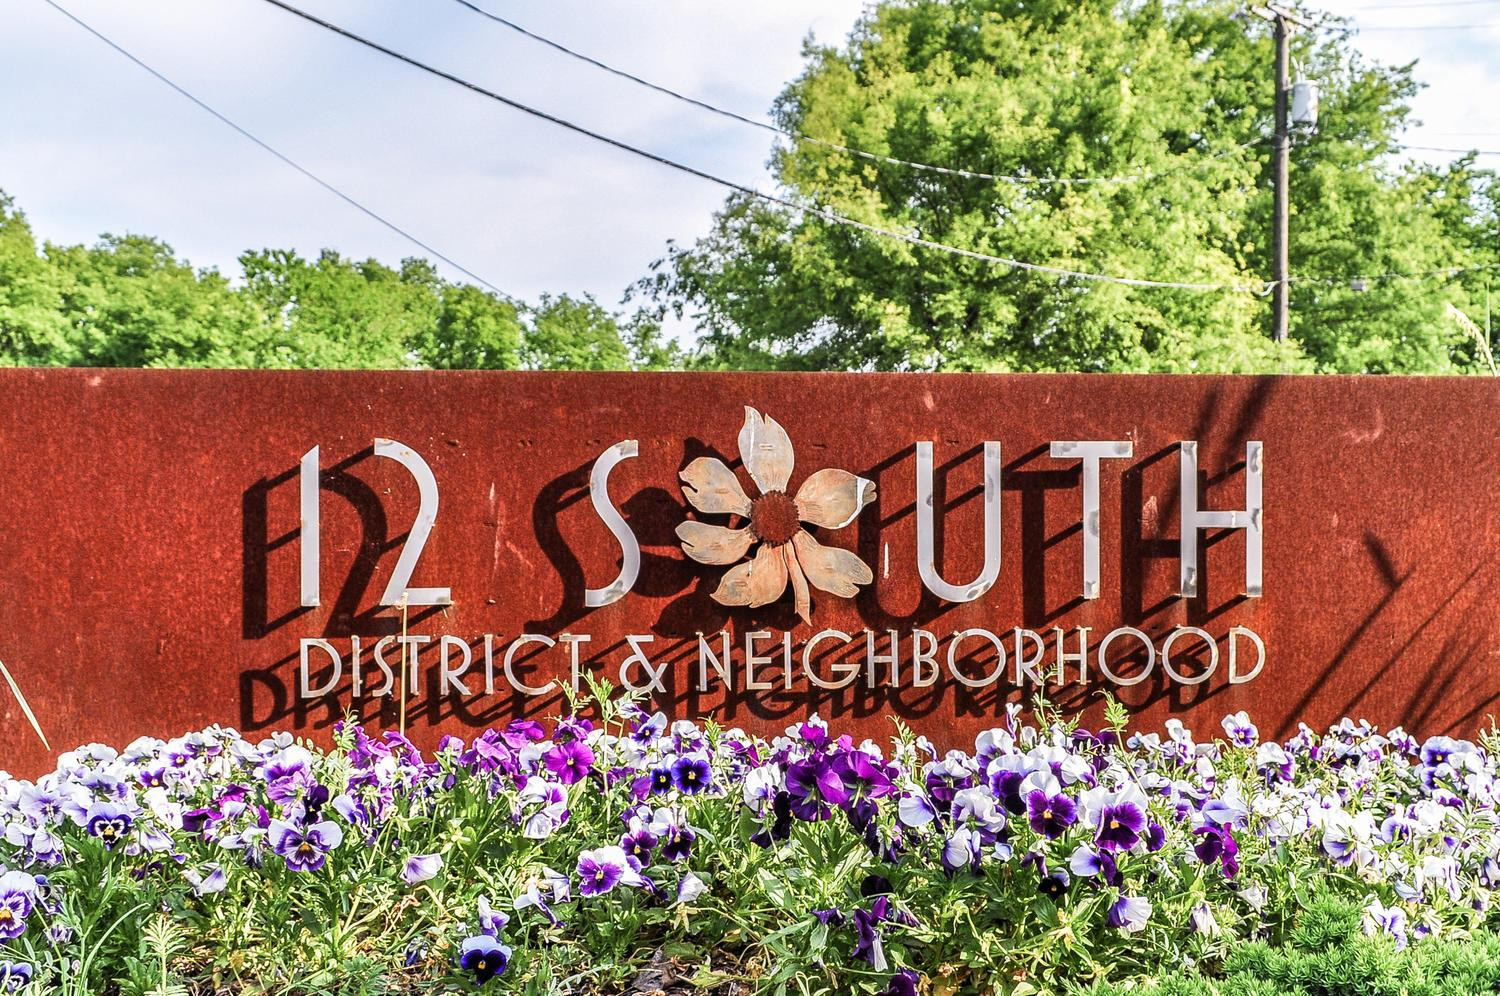 12 South - One of the hottest areas in town